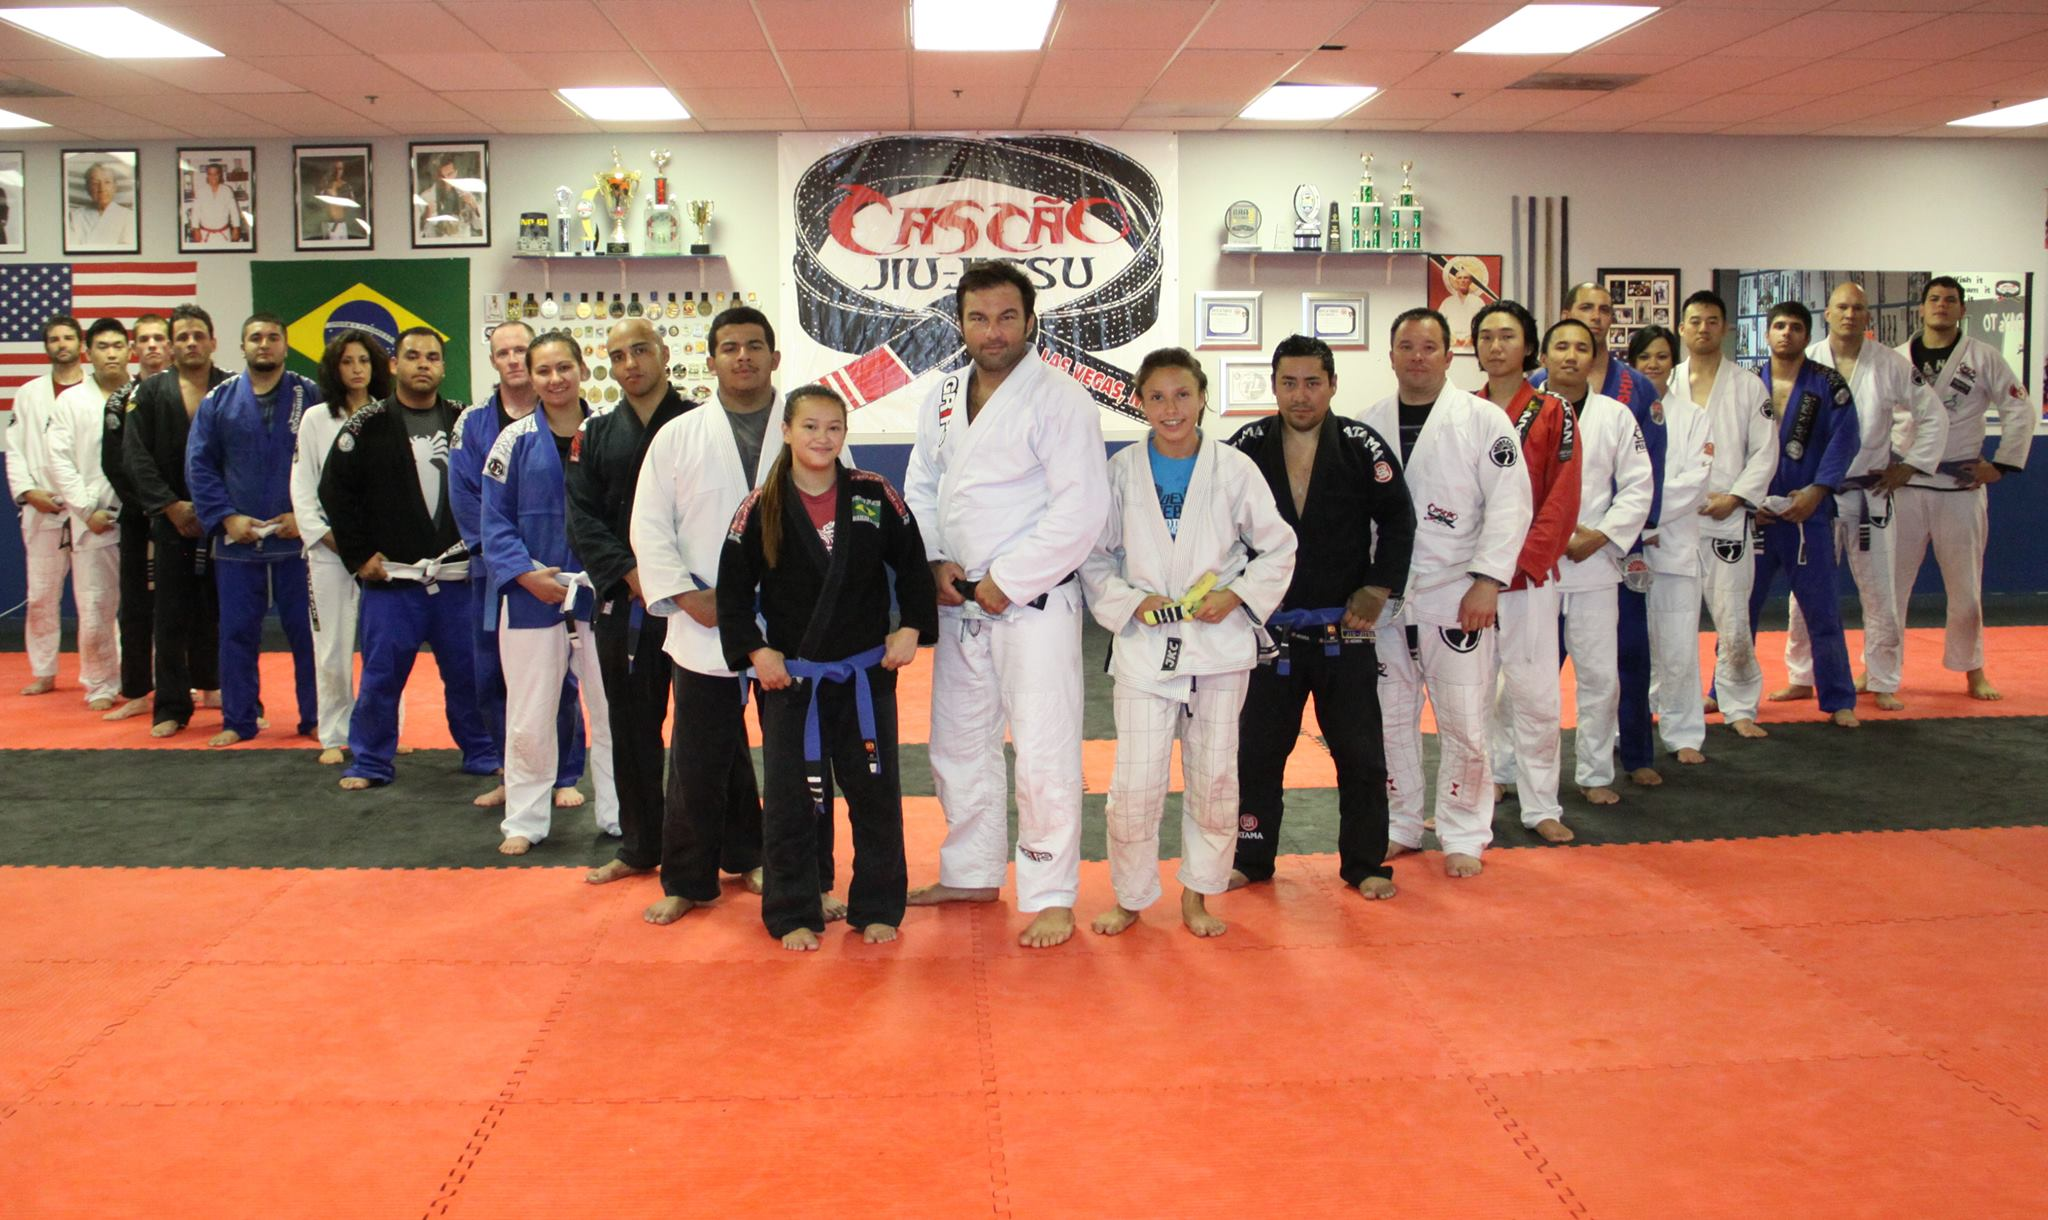 The Cascao Jiu-Jitsu team ready for the Vegas Summer Open. Photo: Personal Archive